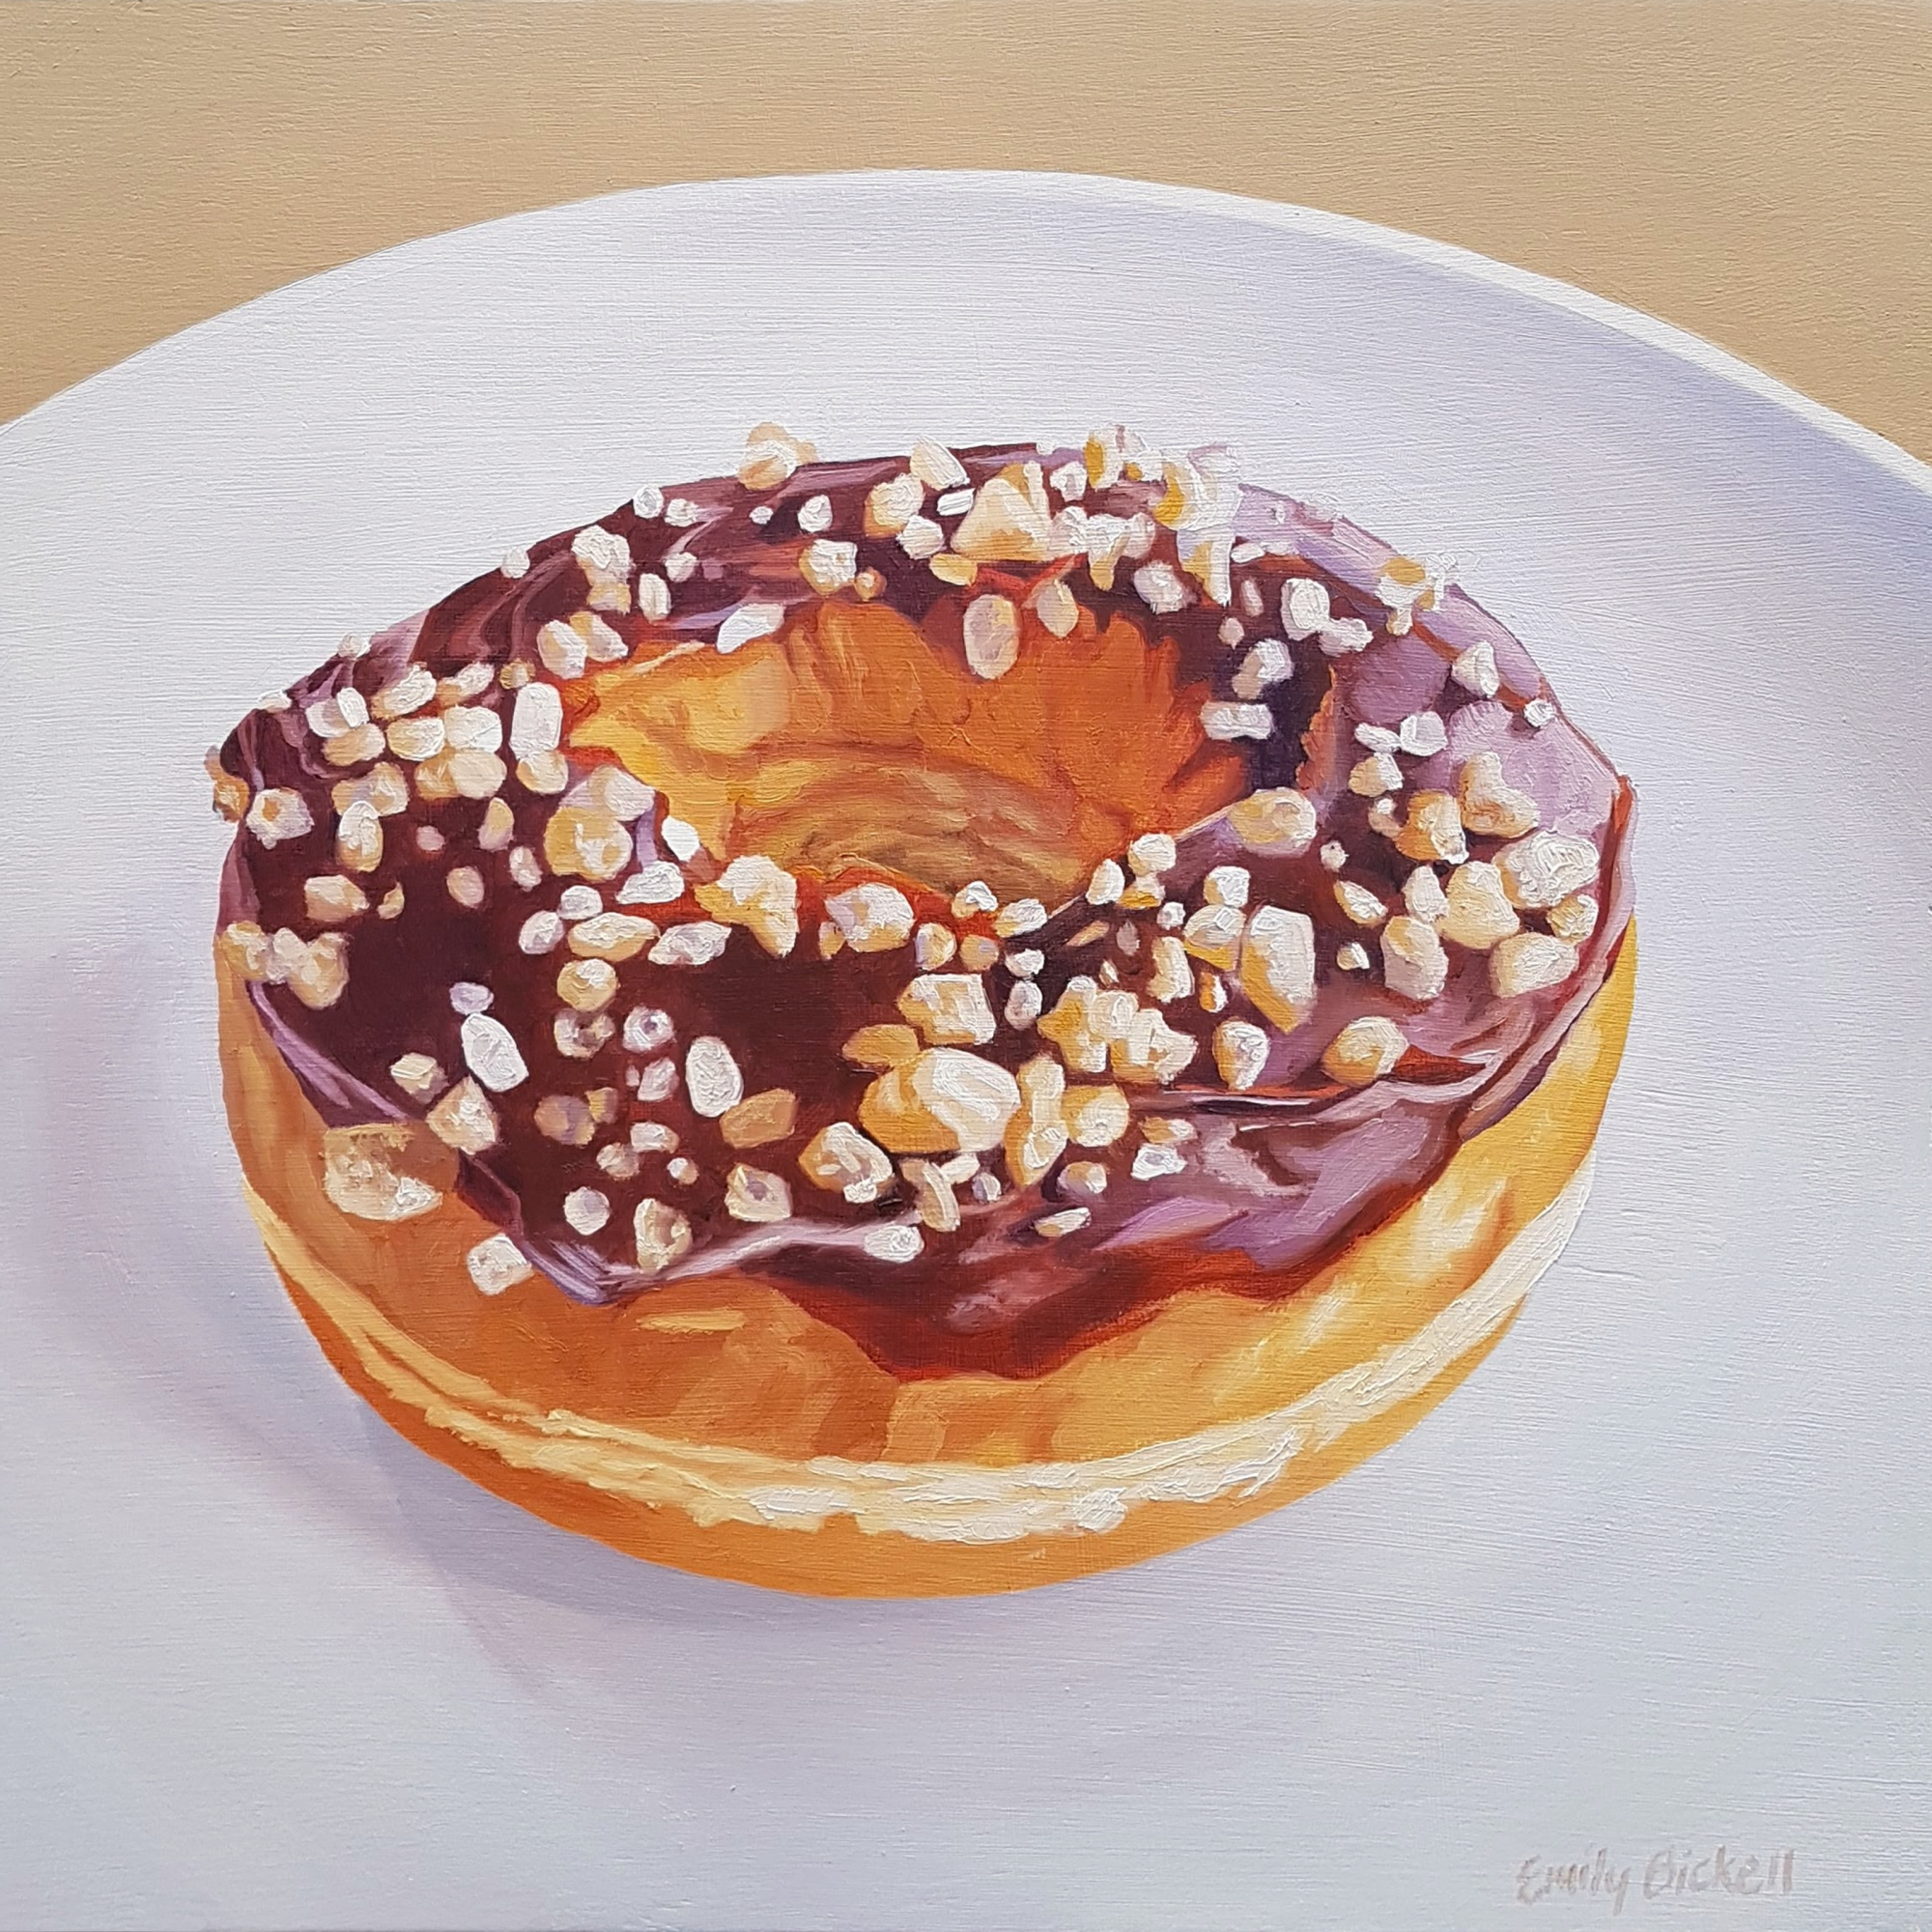 Salted Caramel Donut by Emily Bickell